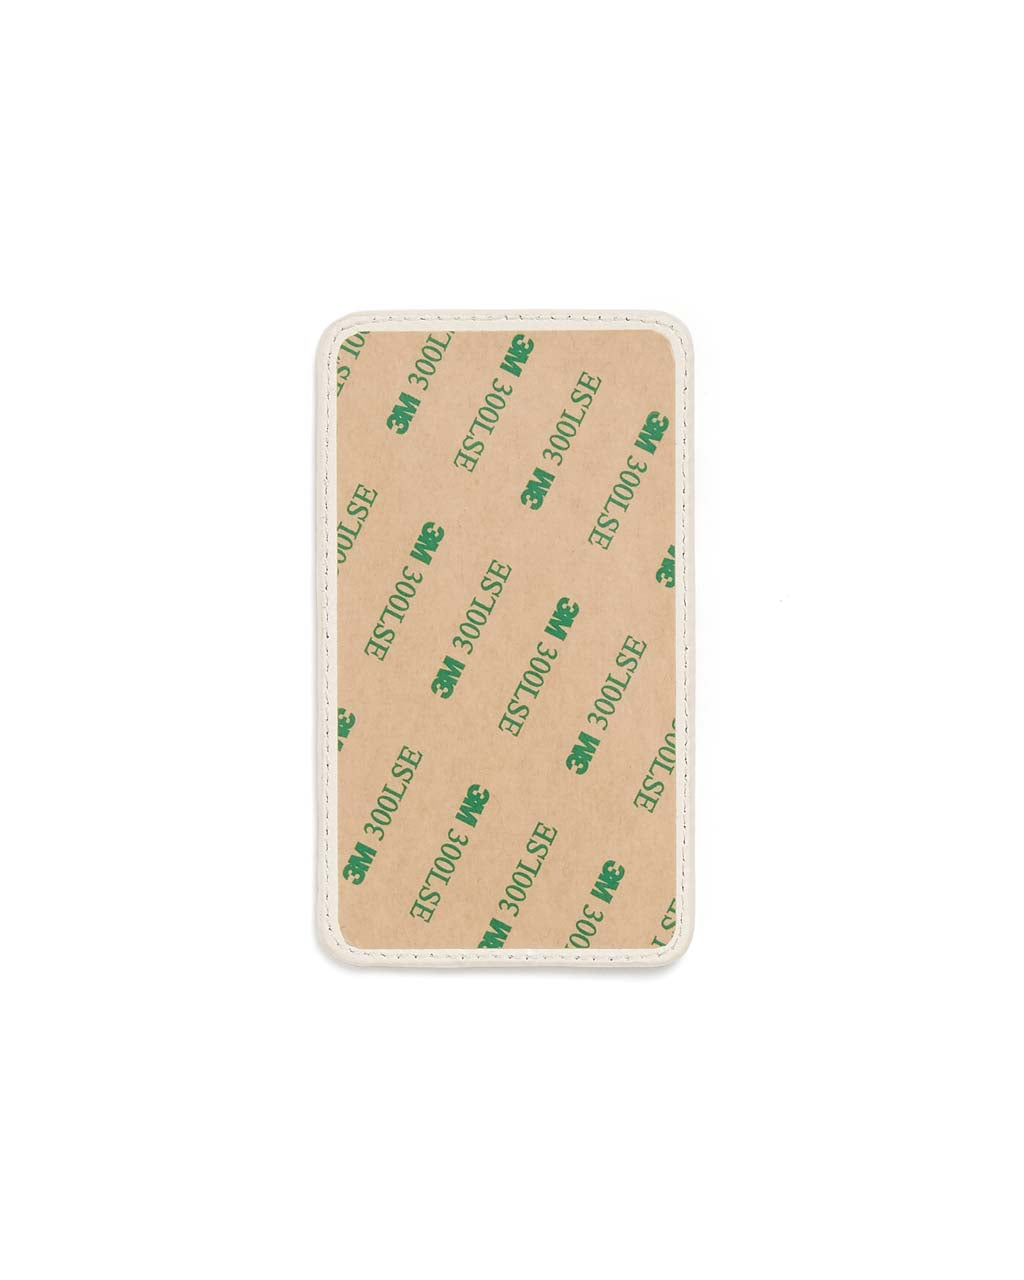 Adhesive back sticks to any phone or phone case.